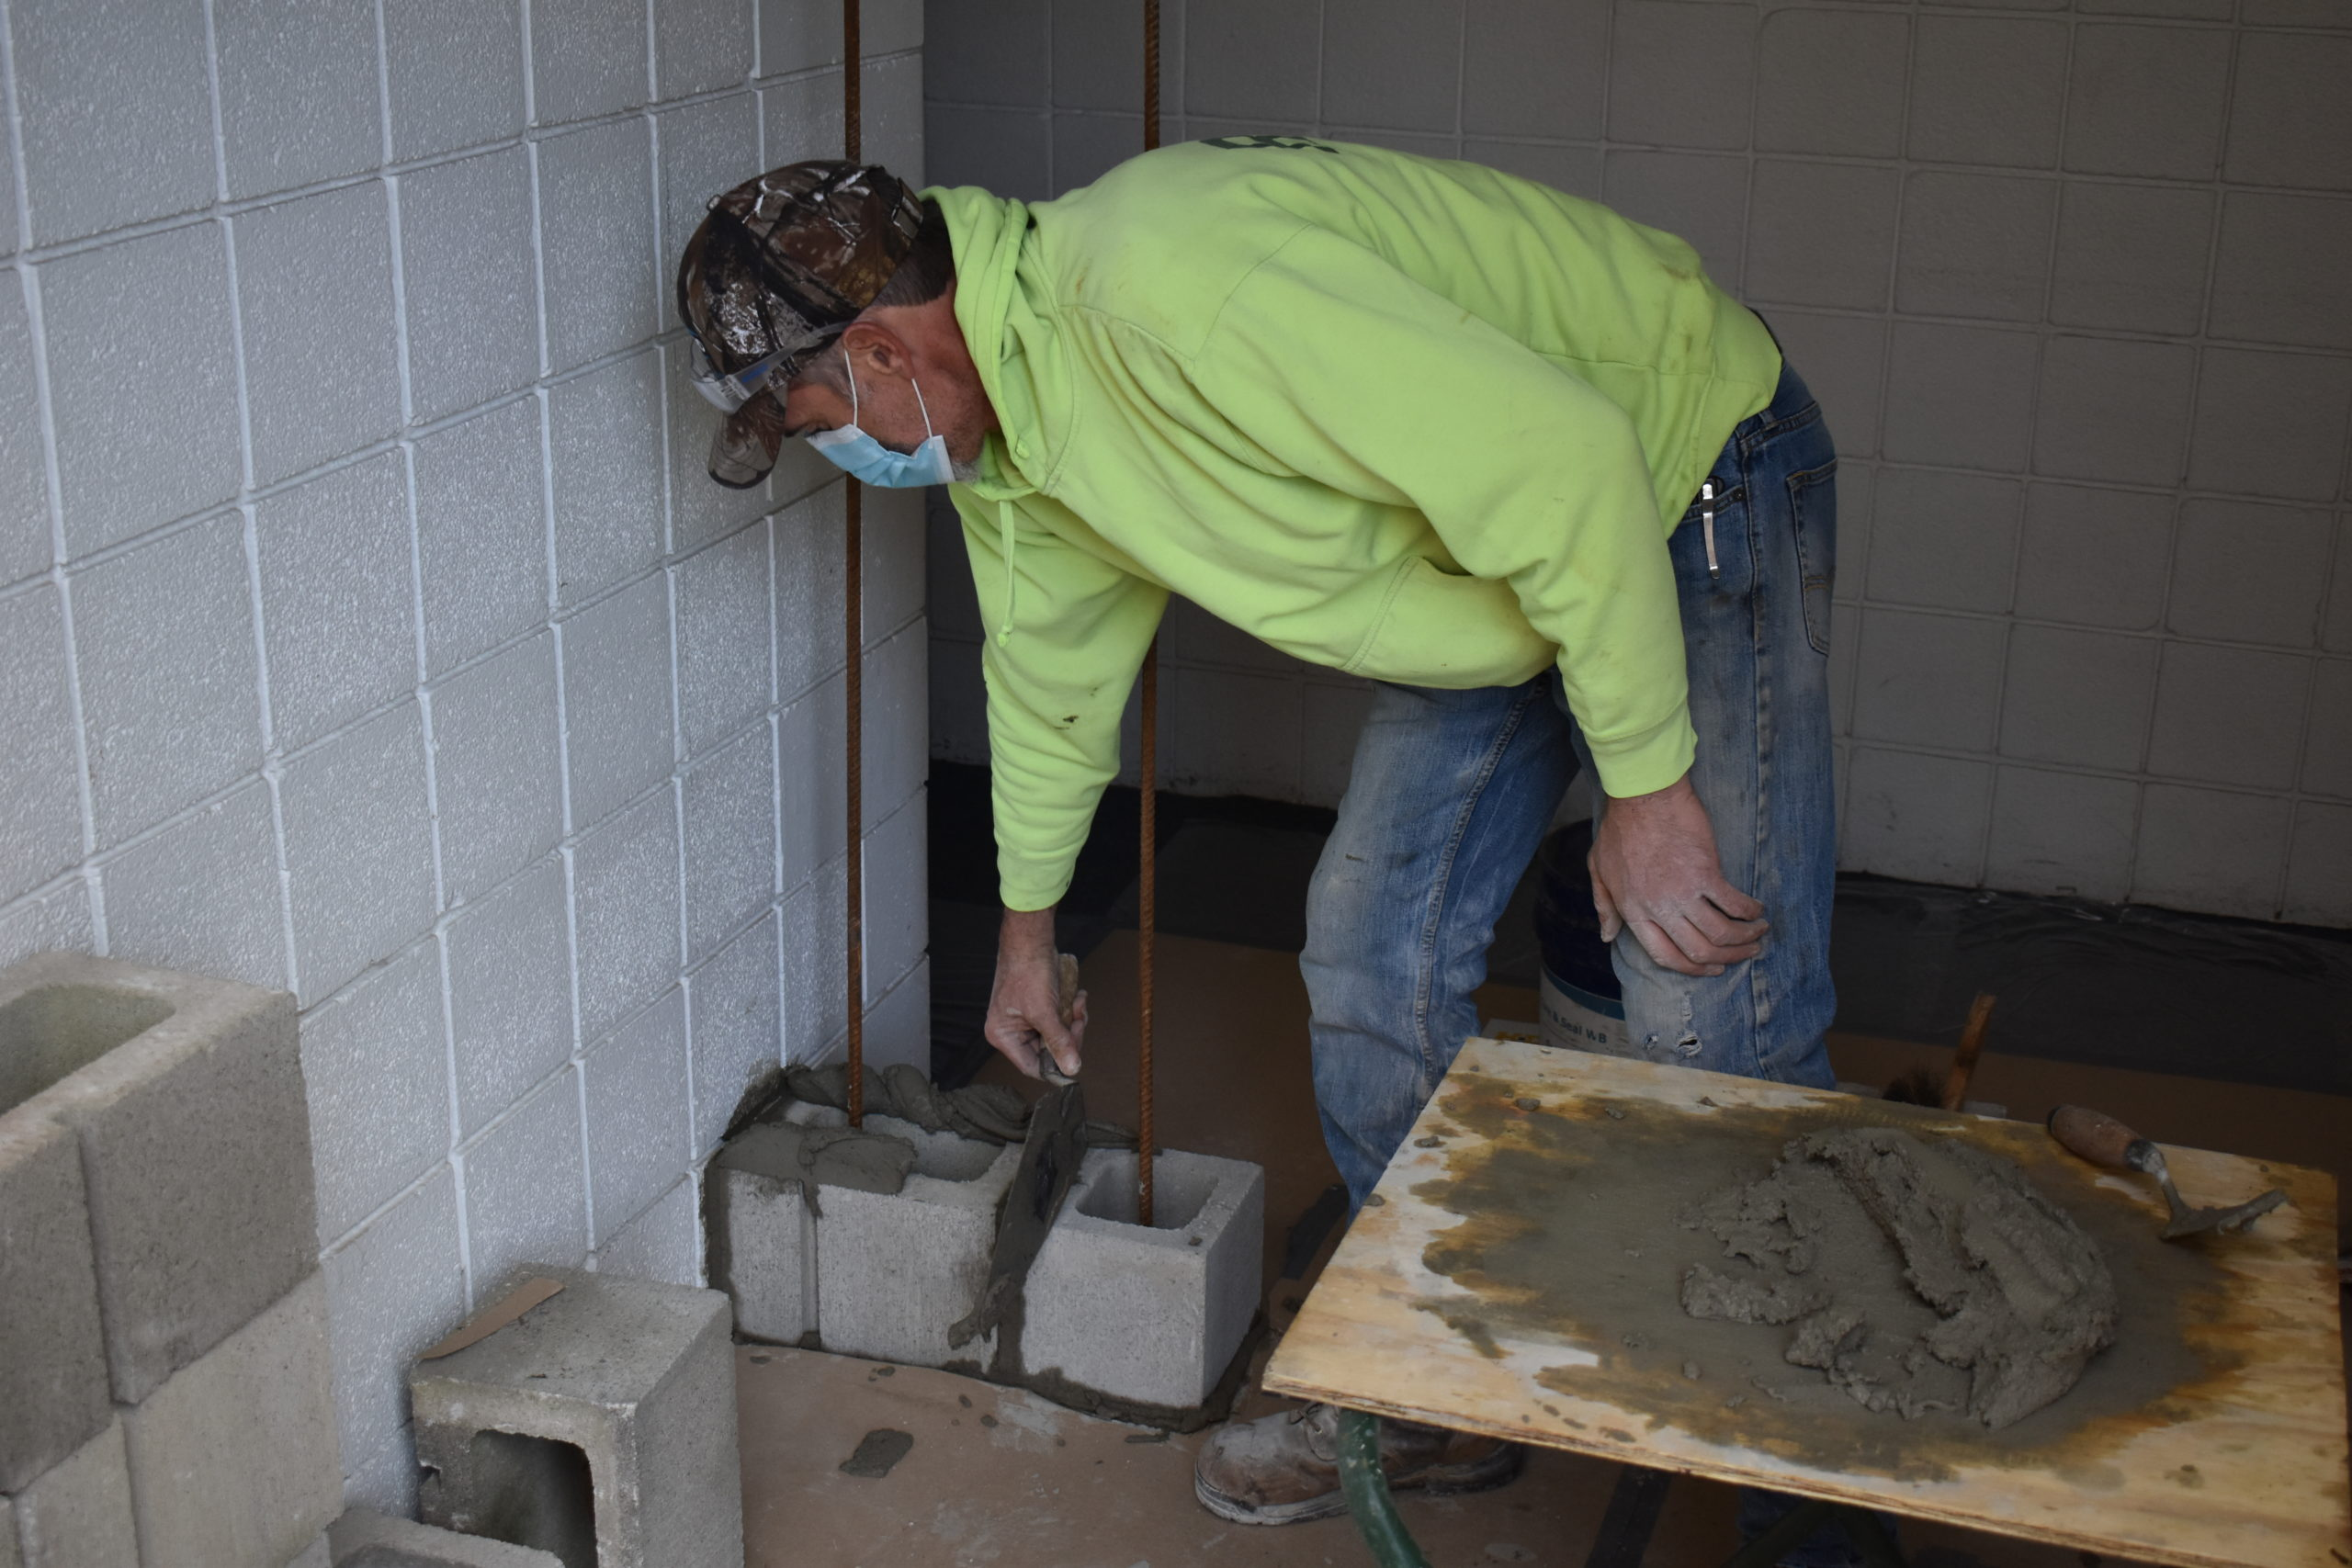 John Hill of Rien Construction blocks in the employee entrance at Brookfield Police Department. The new vestibule will contain a thermometer for logging temperatures of those who enter the building, with the intent to prevent COVID-19 from entering.